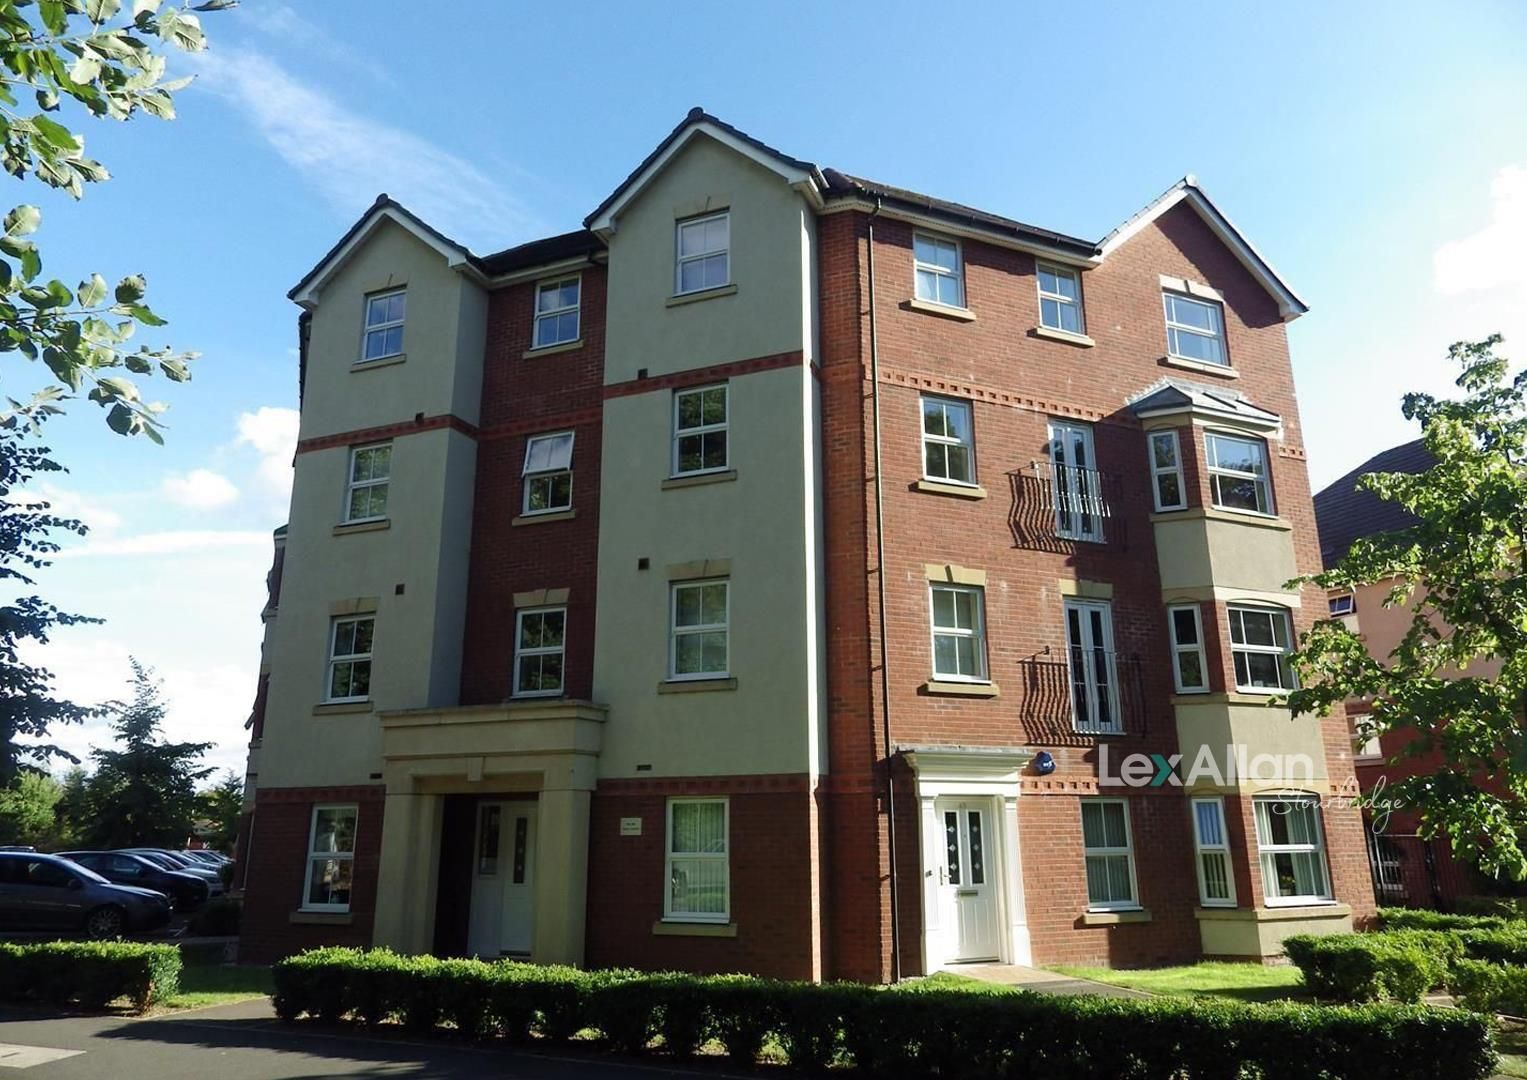 2 bed apartment for sale in Amblecote, DY8